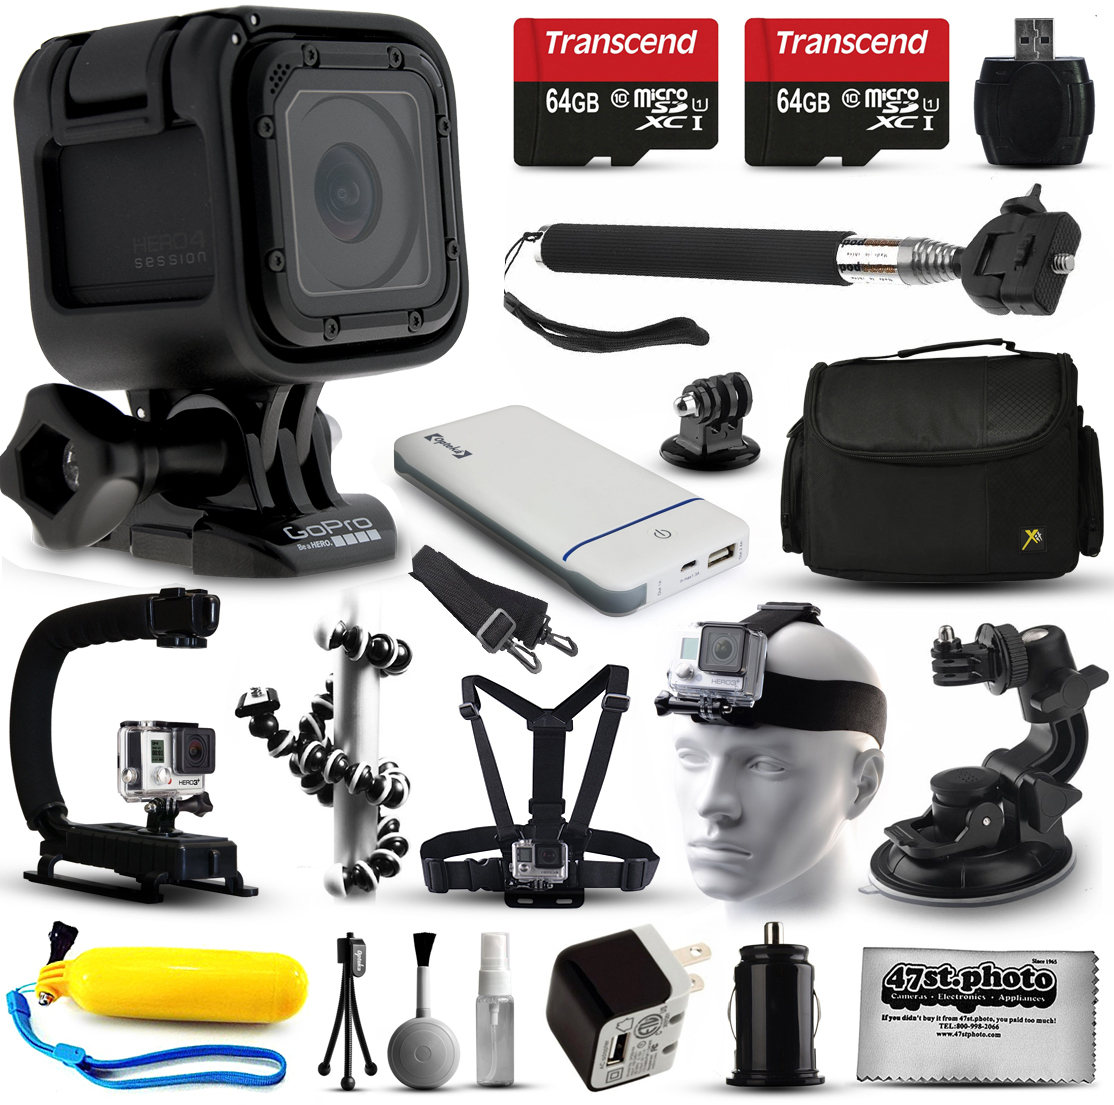 GoPro HERO4 Session HD Action Camera (CHDHS-101) + Ultimate 20 Piece Accessories Package with 128GB Memory + Travel Case + USB Portable Charger + Head\/Chest Strap + Opteka X-Grip + Car Mount & More!